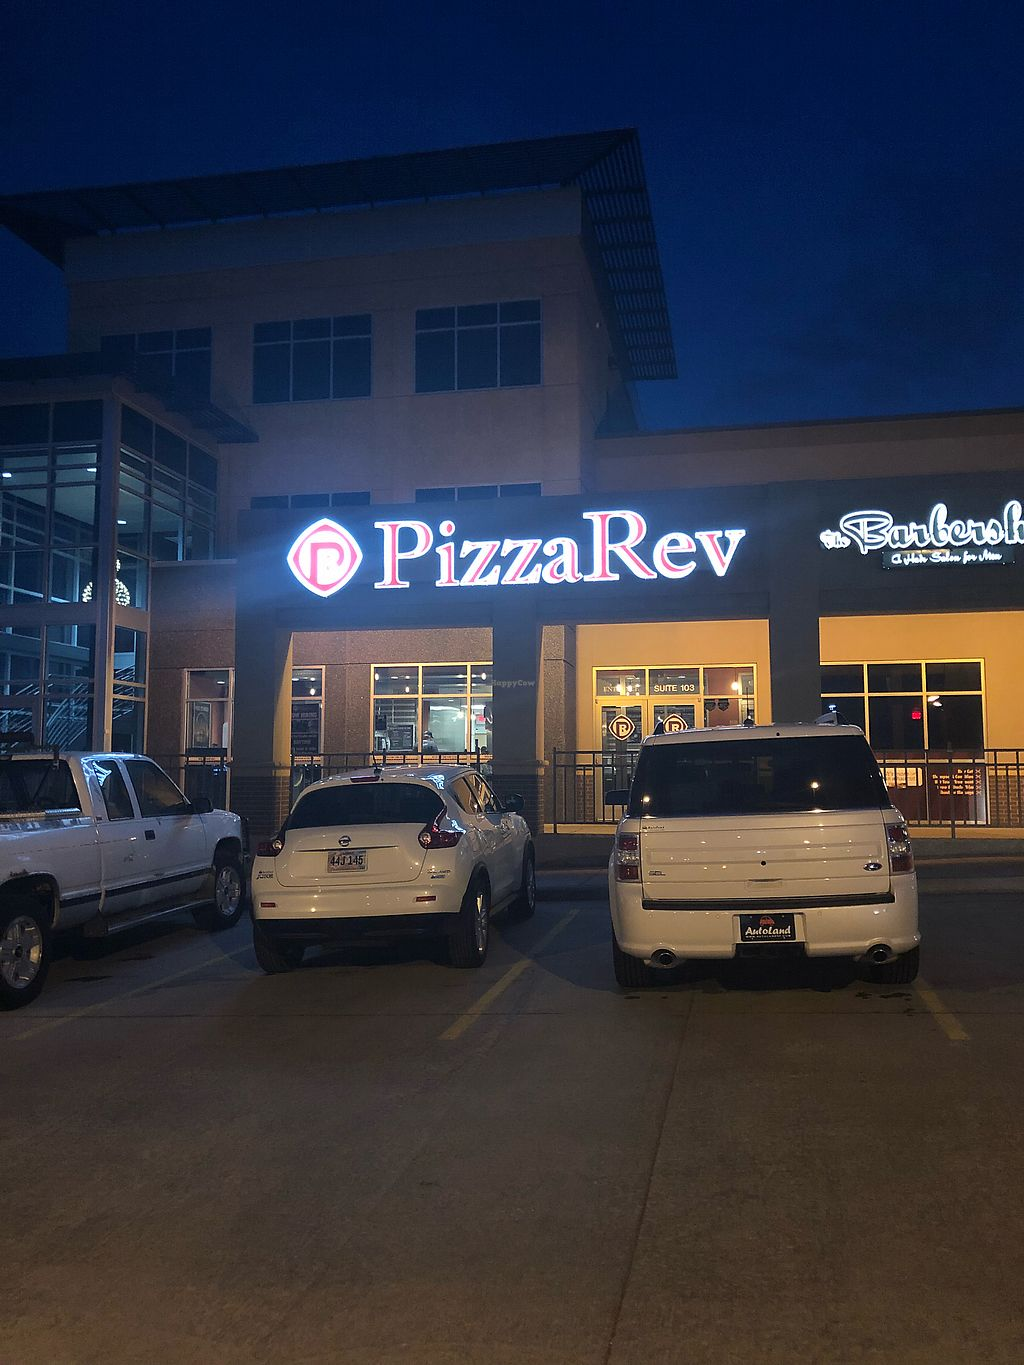 """Photo of PizzaRev  by <a href=""""/members/profile/Jadediana"""">Jadediana</a> <br/>Pizza Rev Front Building Location  <br/> April 14, 2018  - <a href='/contact/abuse/image/116840/385512'>Report</a>"""